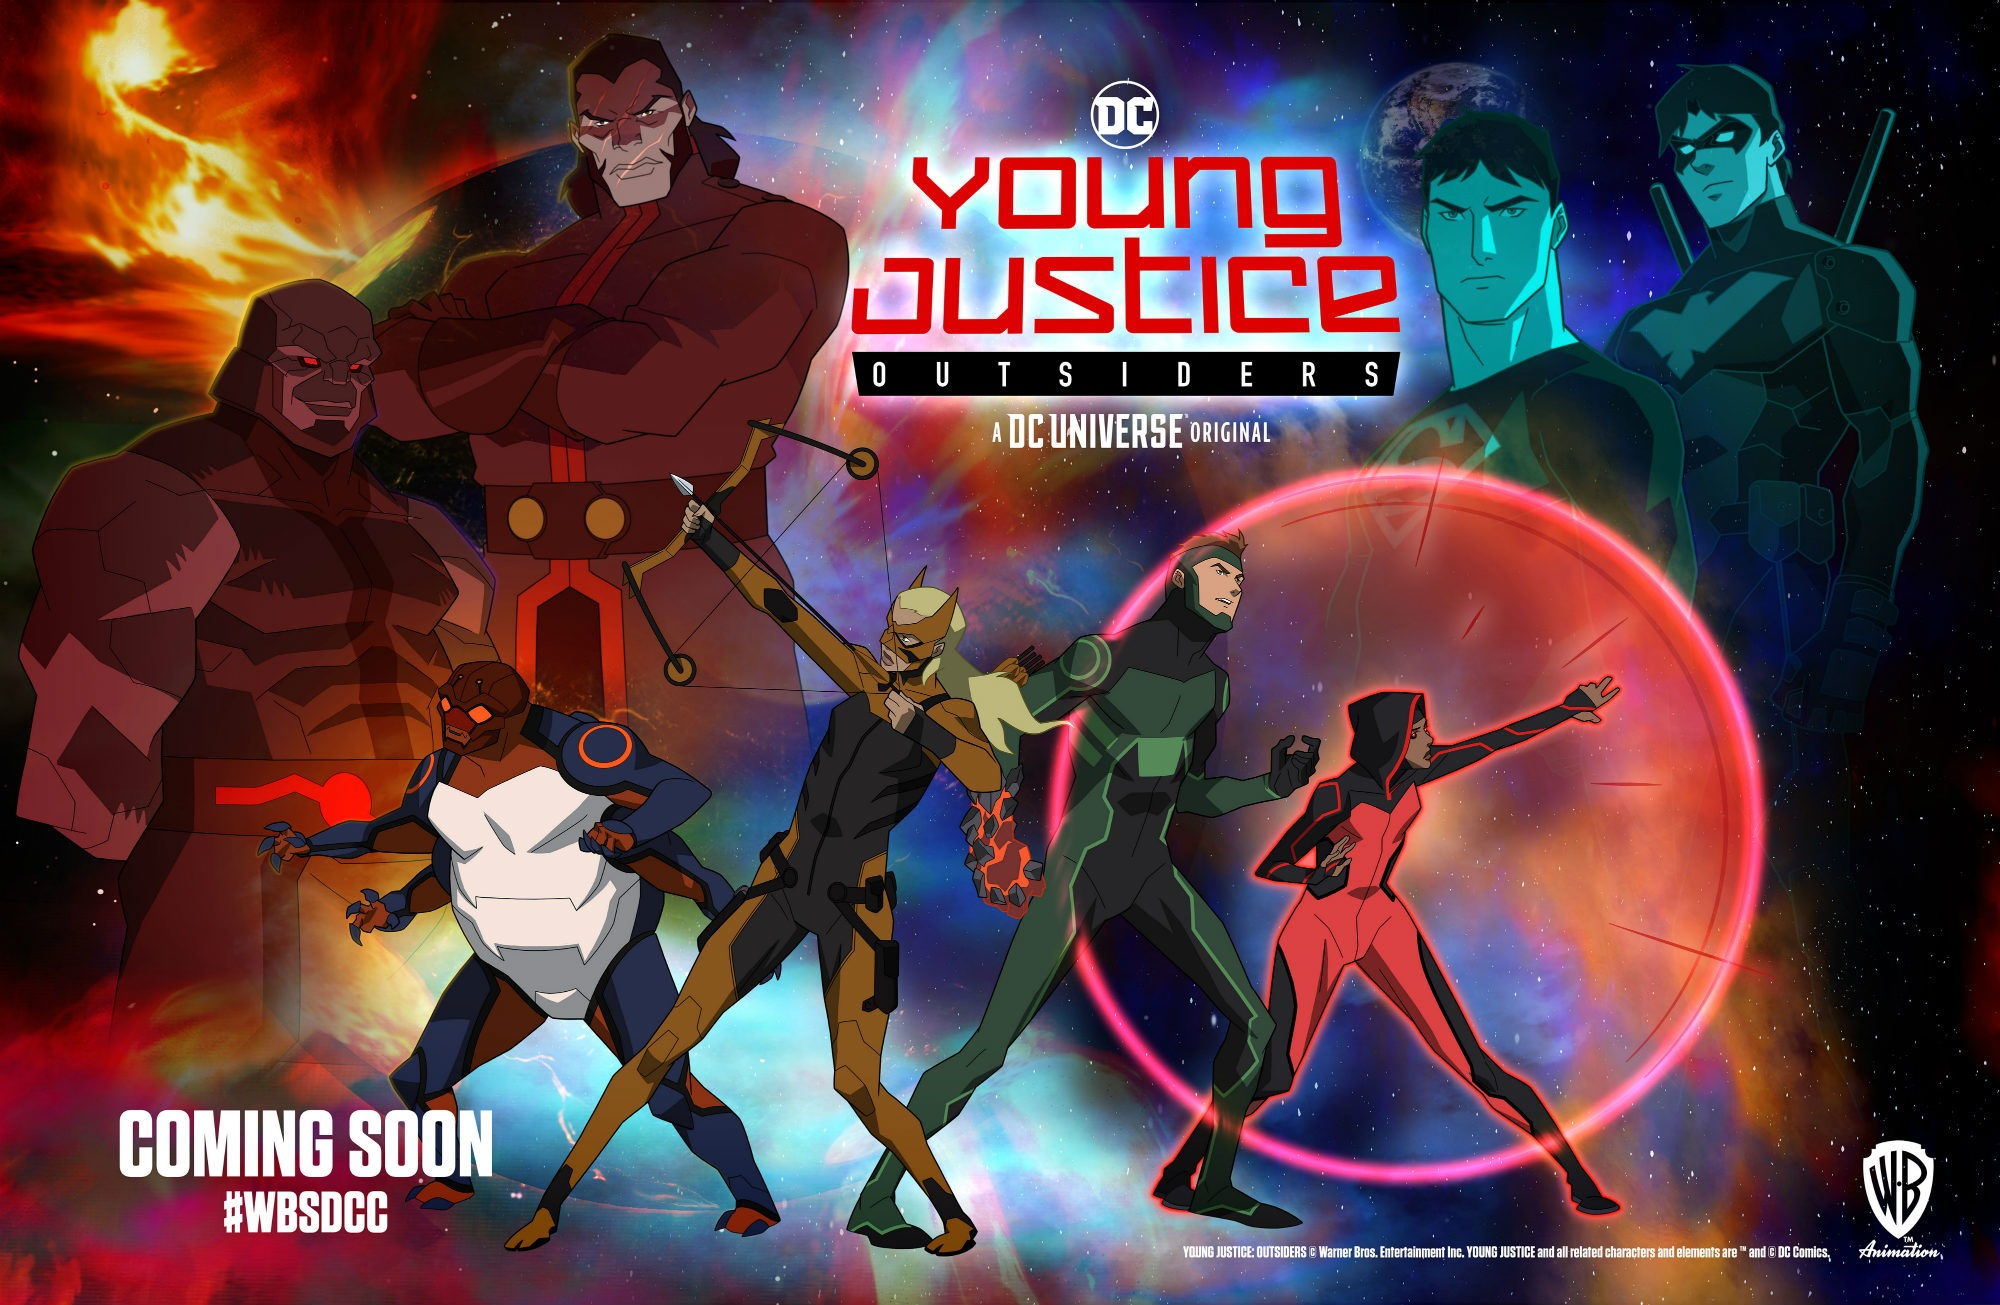 The new Young Justice: Outsiders poster